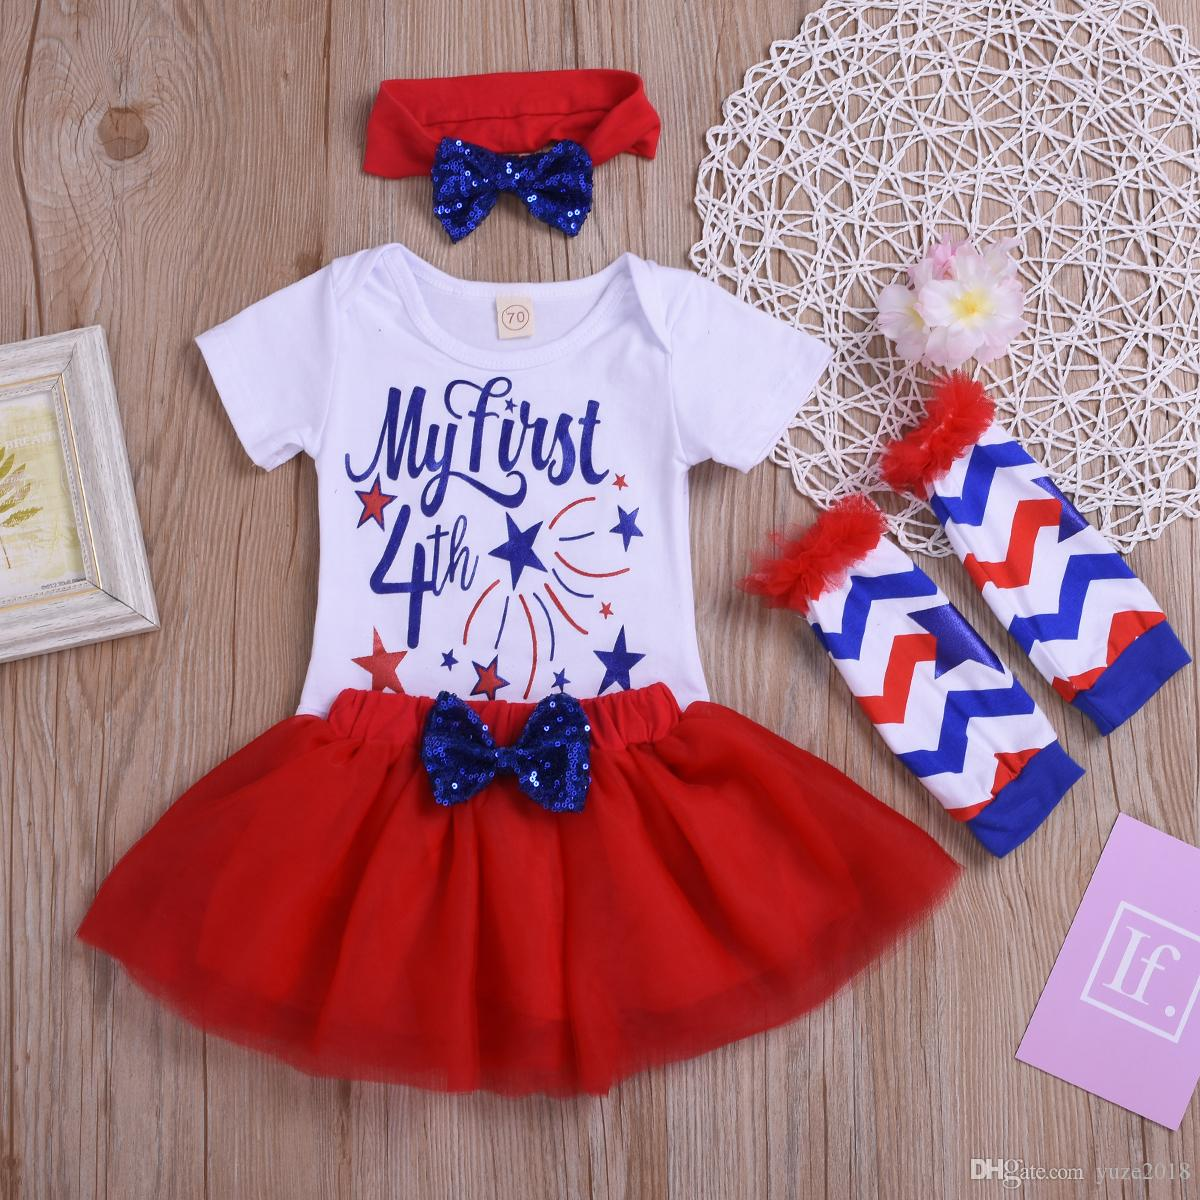 1st 4th of July independence day Baby Girl Outfit Tutu Dress Party Costume Cotton Short Sleeve 4pcs Clothing Set